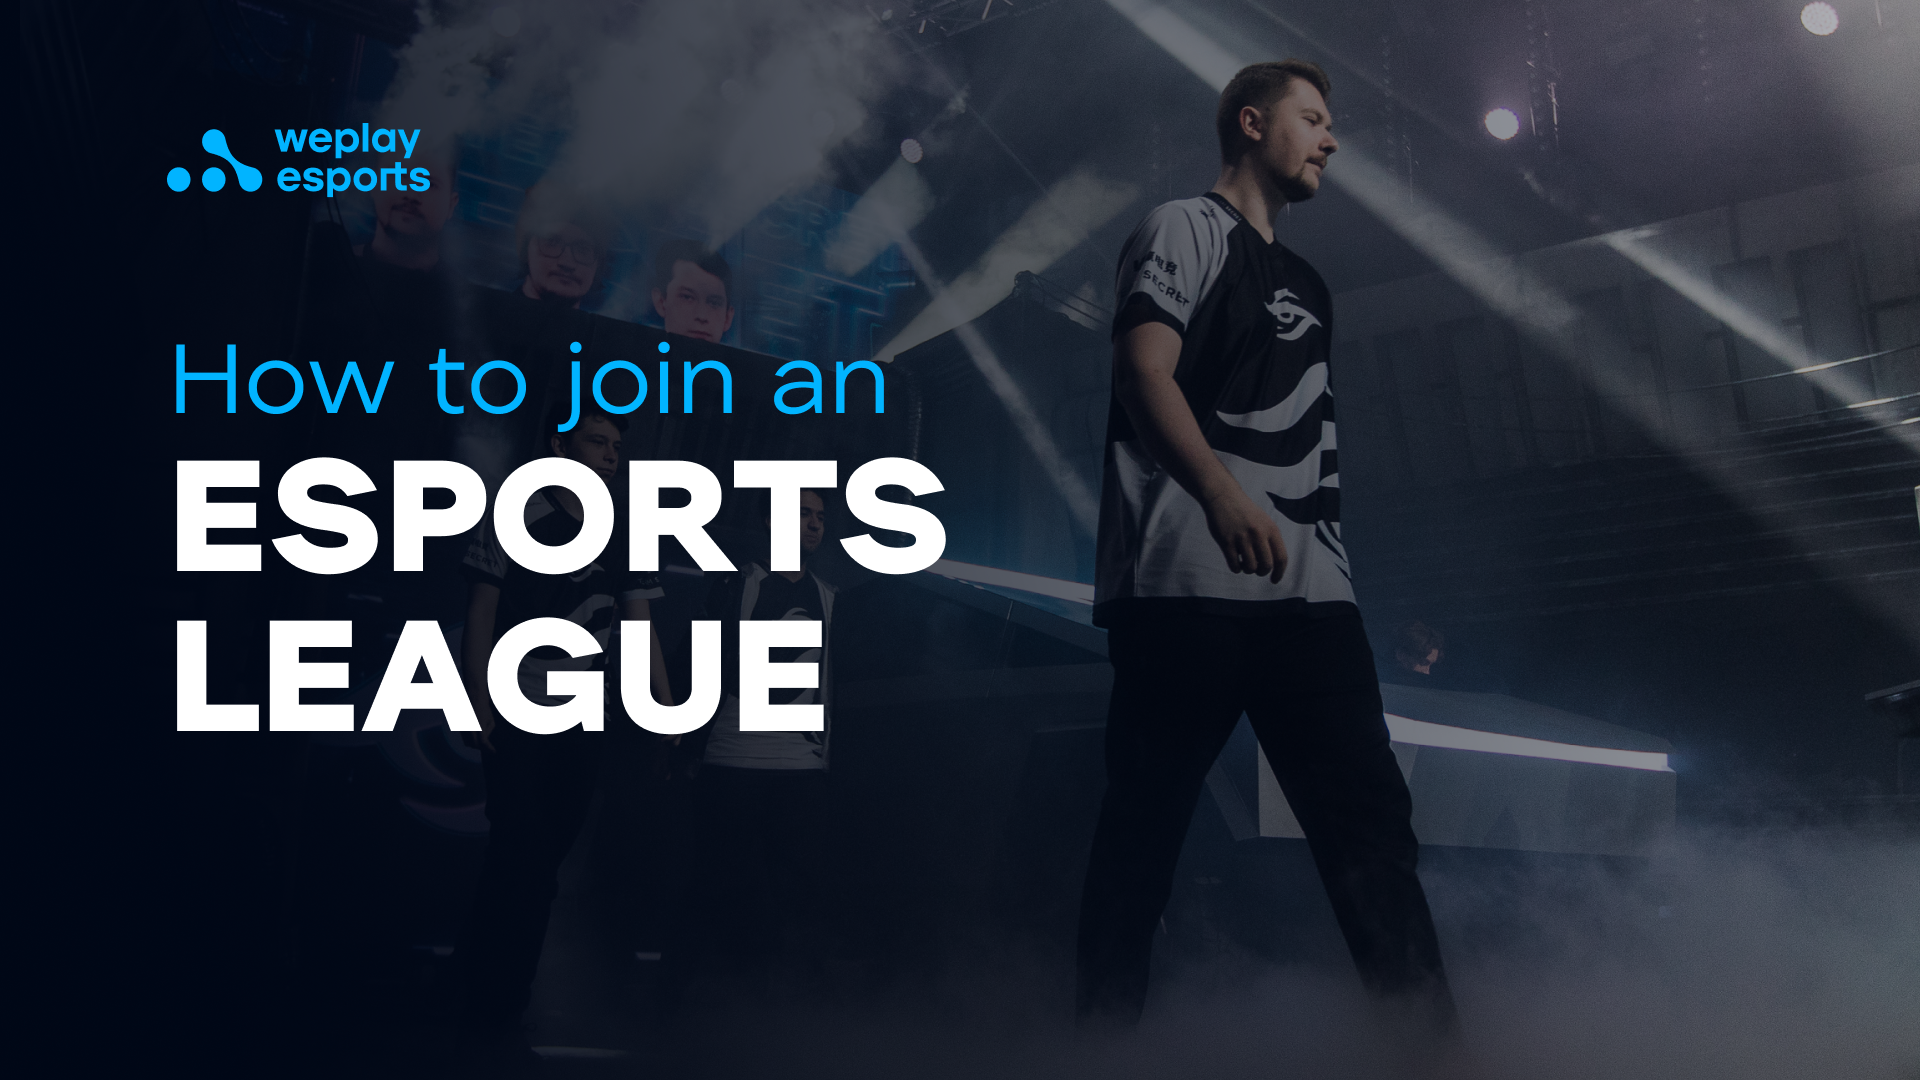 How to join an esports league